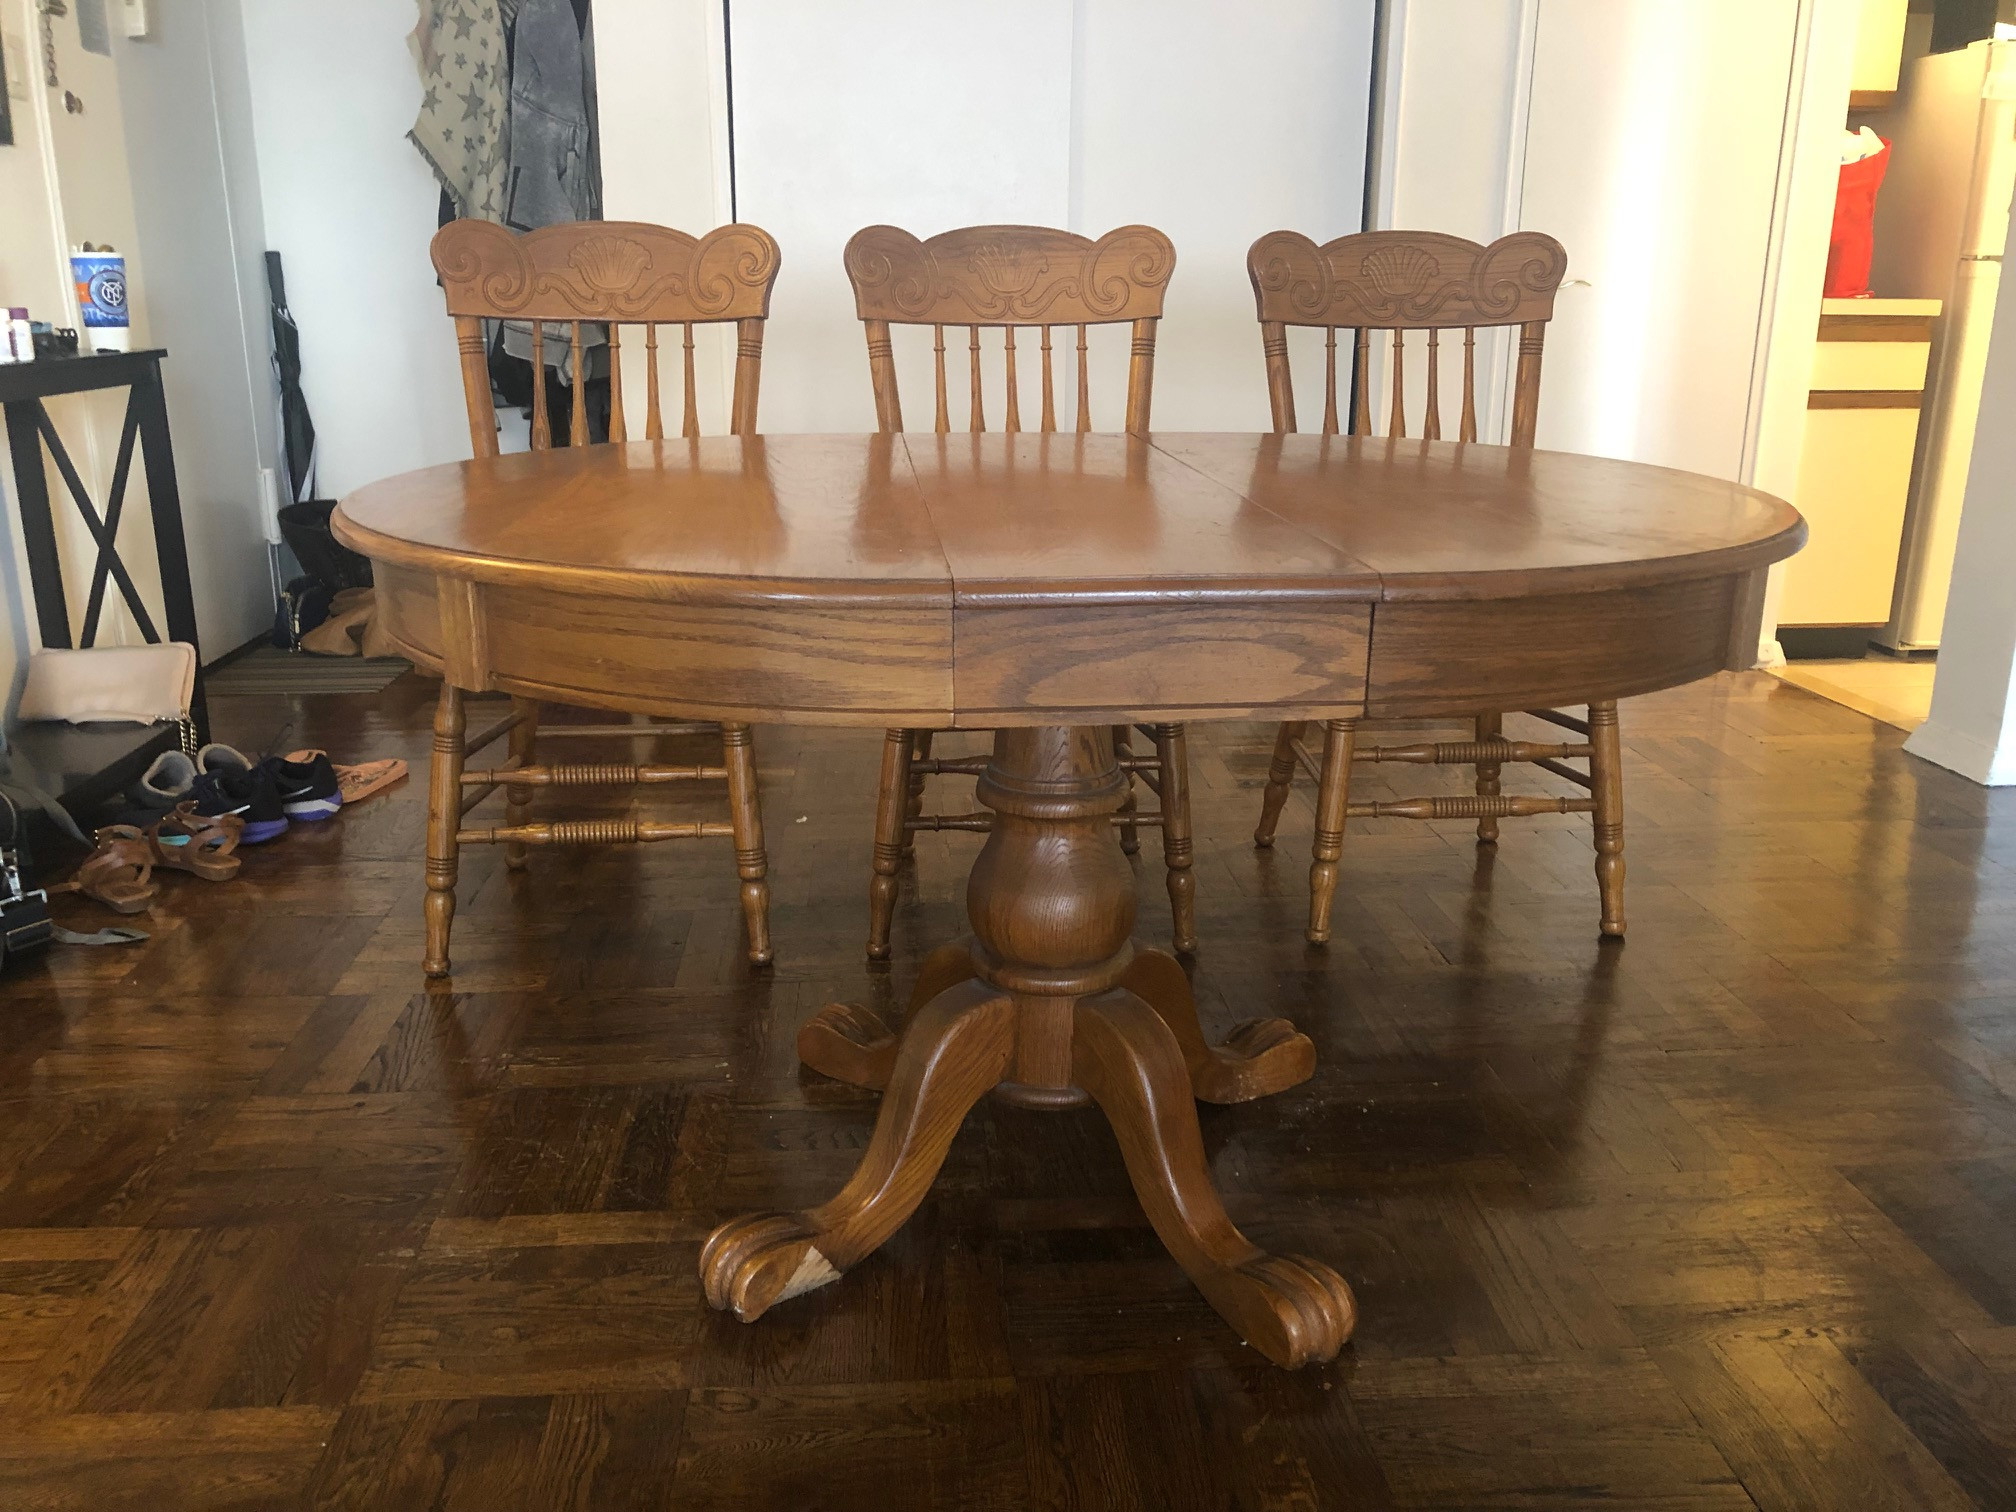 Wood Dining Table w/ Extension Leaf & 3 Chairs